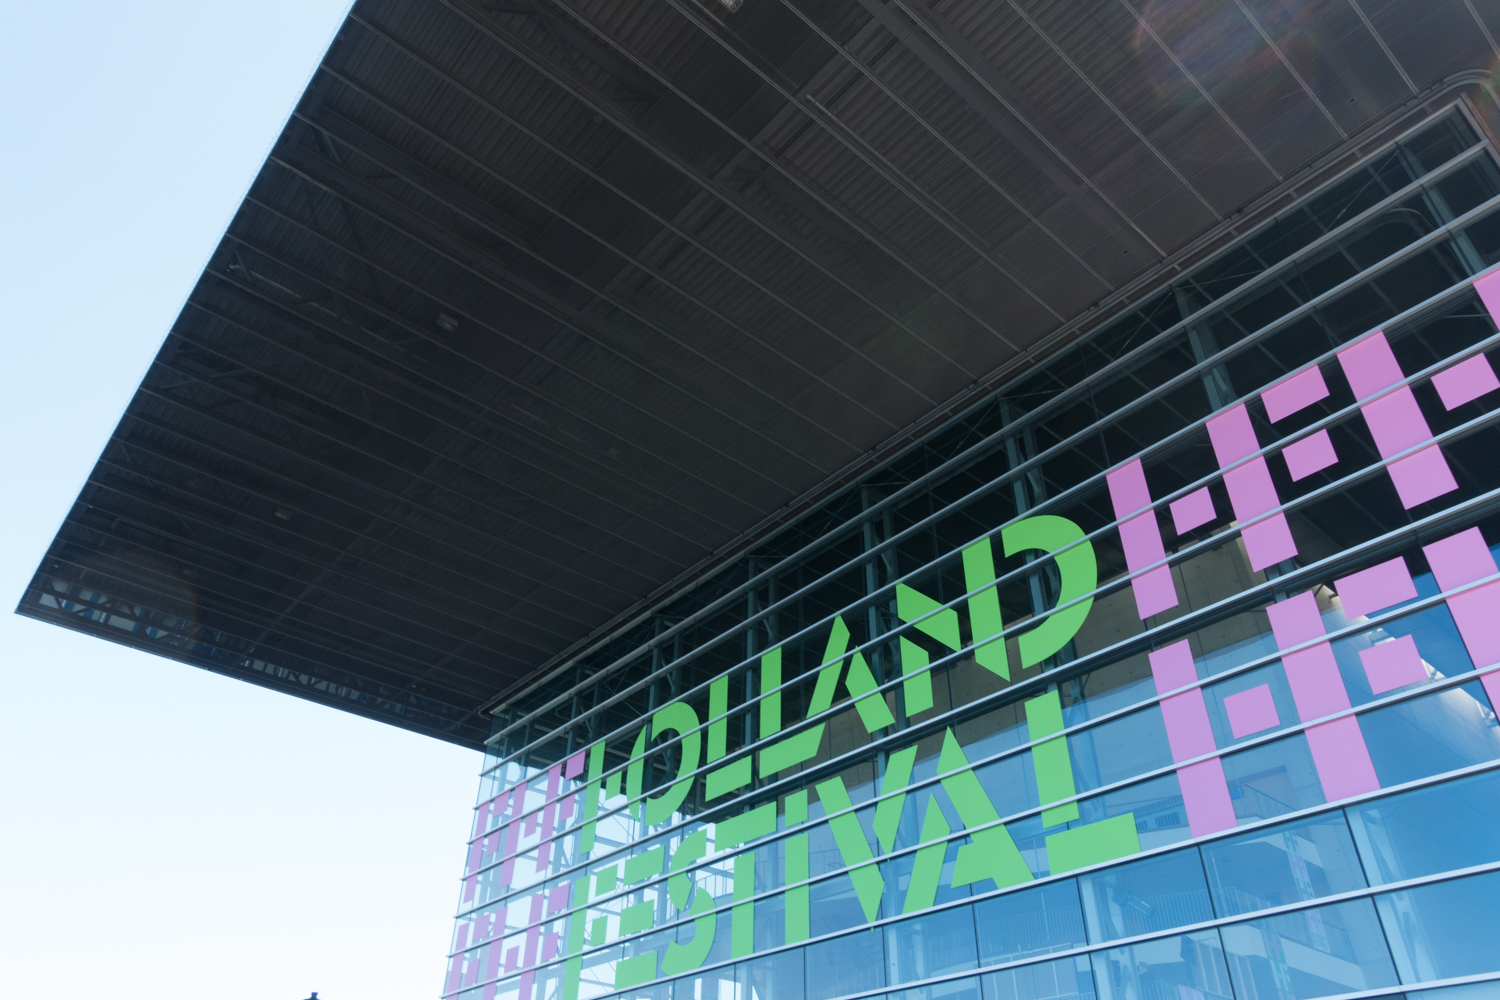 The Muziekgebouw aan 't IJ during the Holland Festival in June 2015. Photo by Canan Marasligil